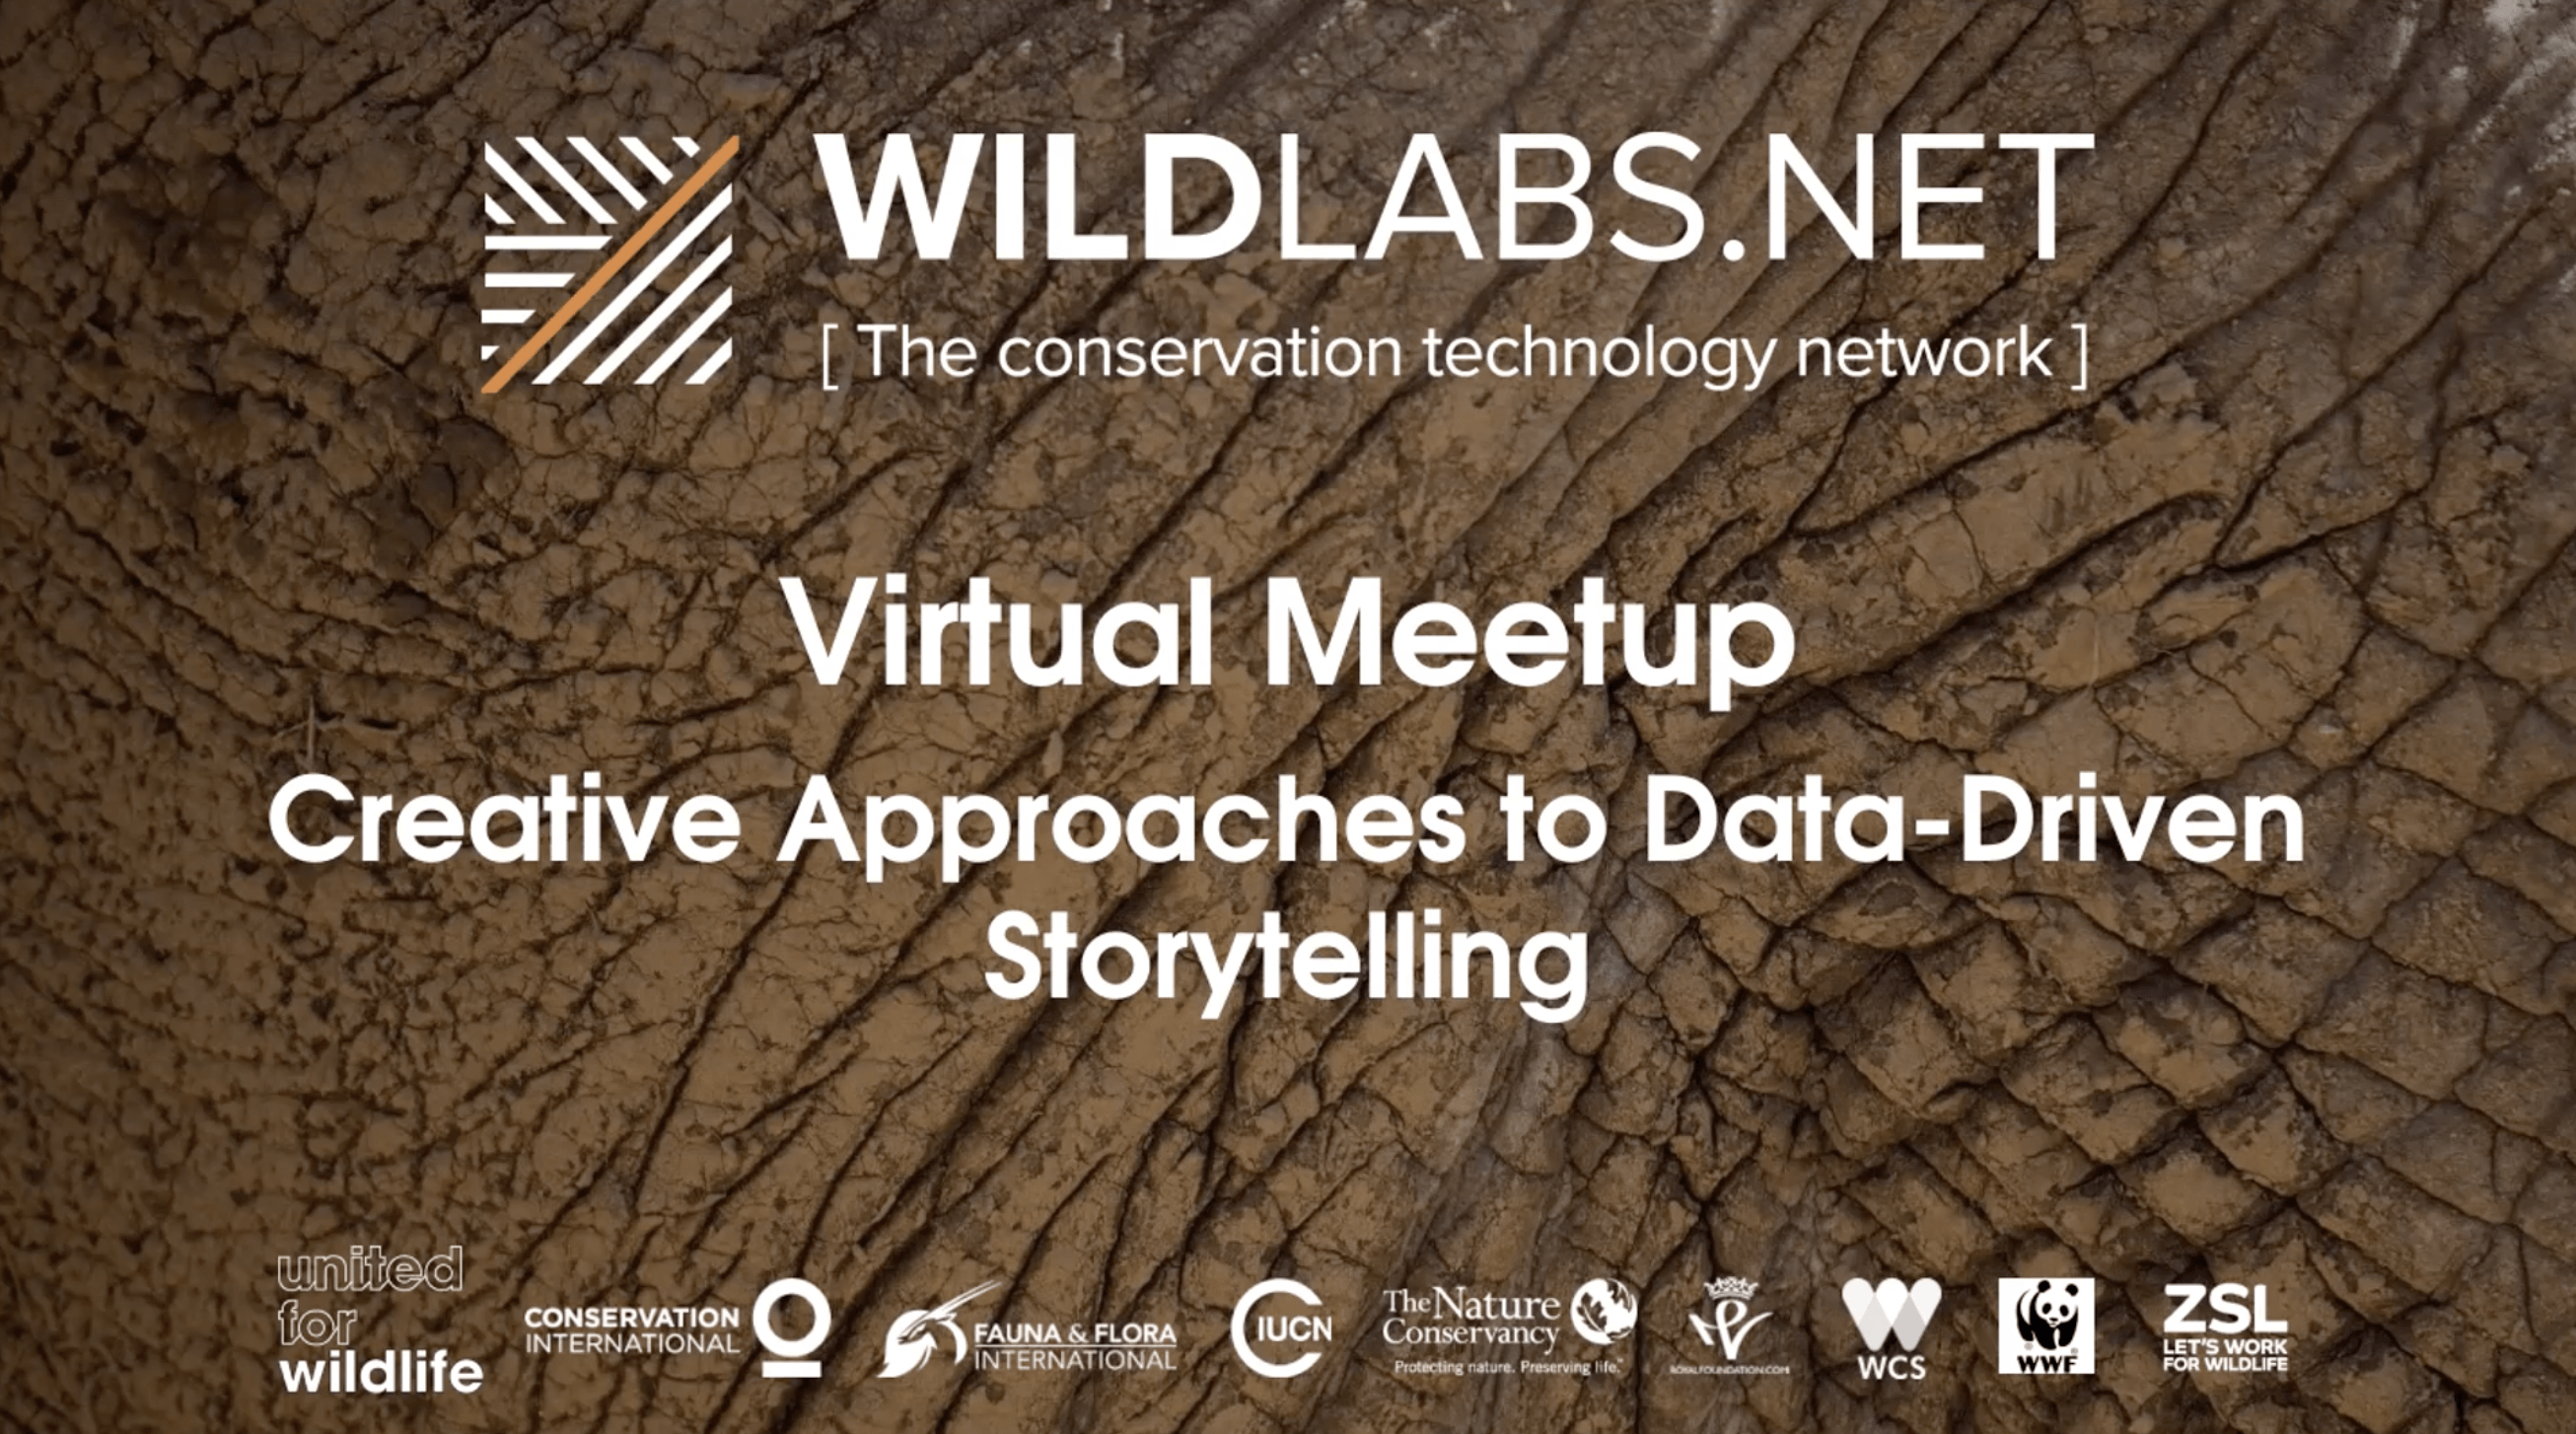 WILDLABS Virtual Meetup Link to Storytelling Video Recording